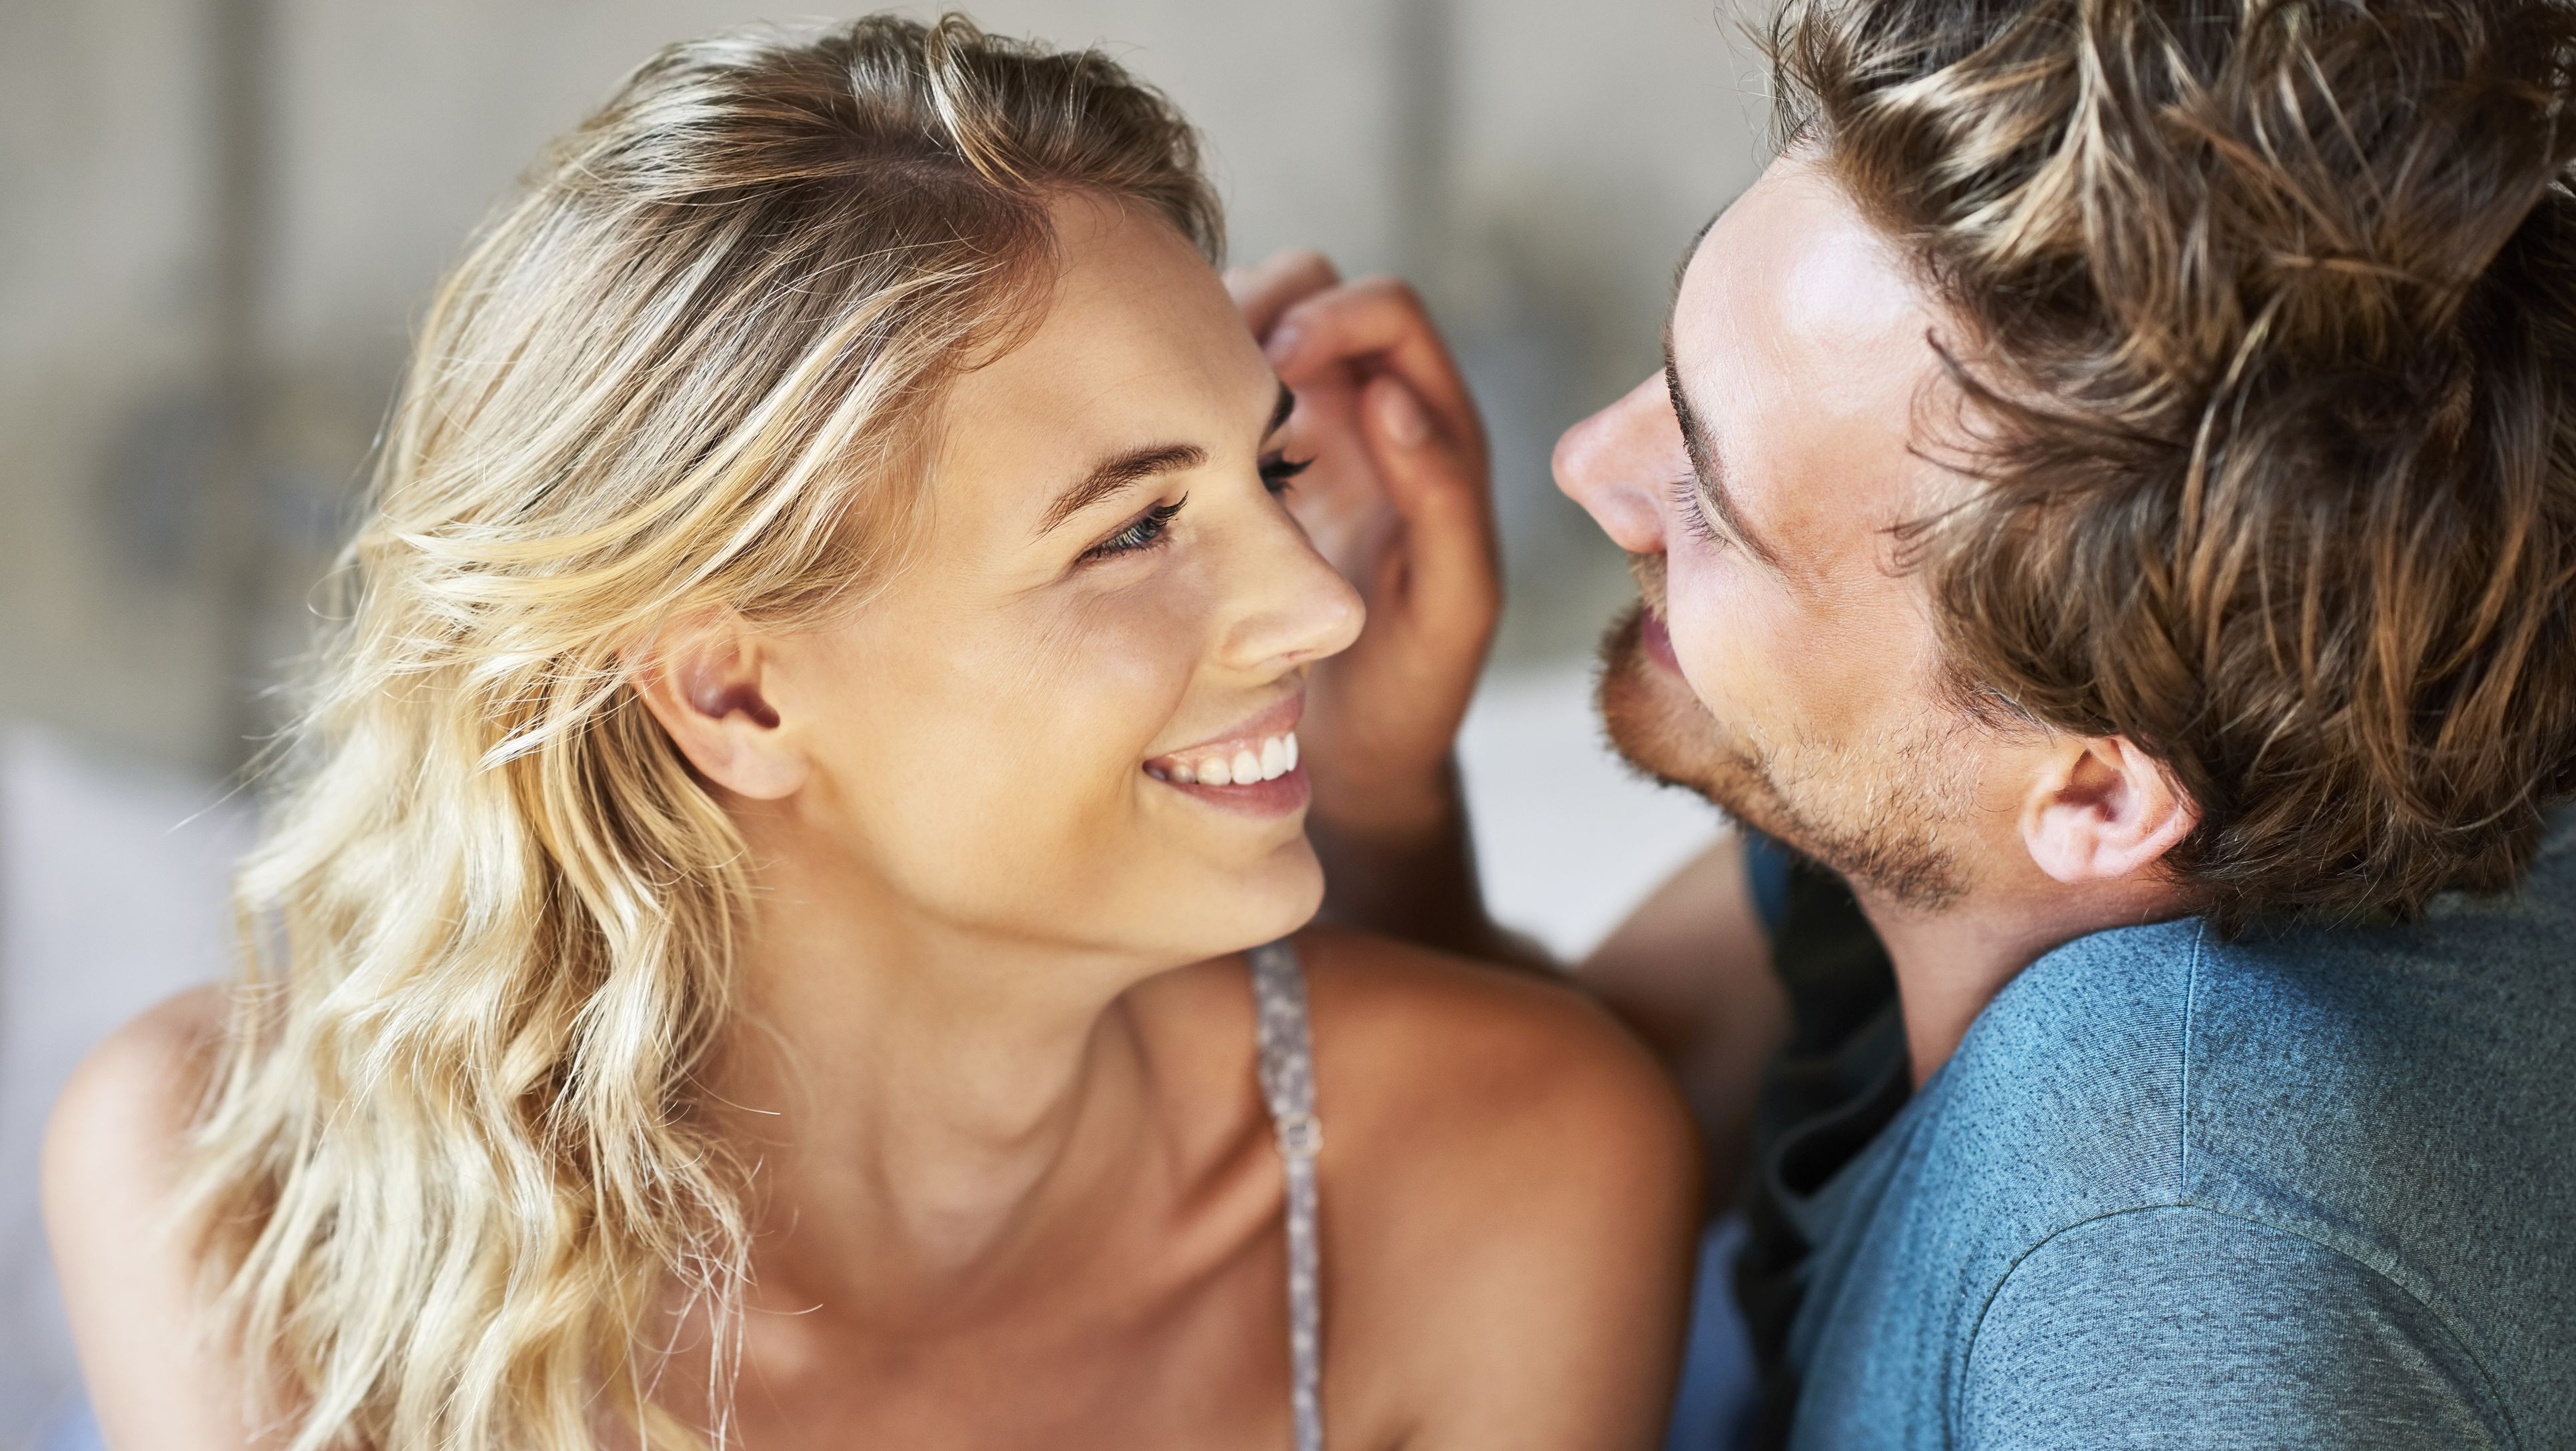 Loving man is playing with woman's hair at home